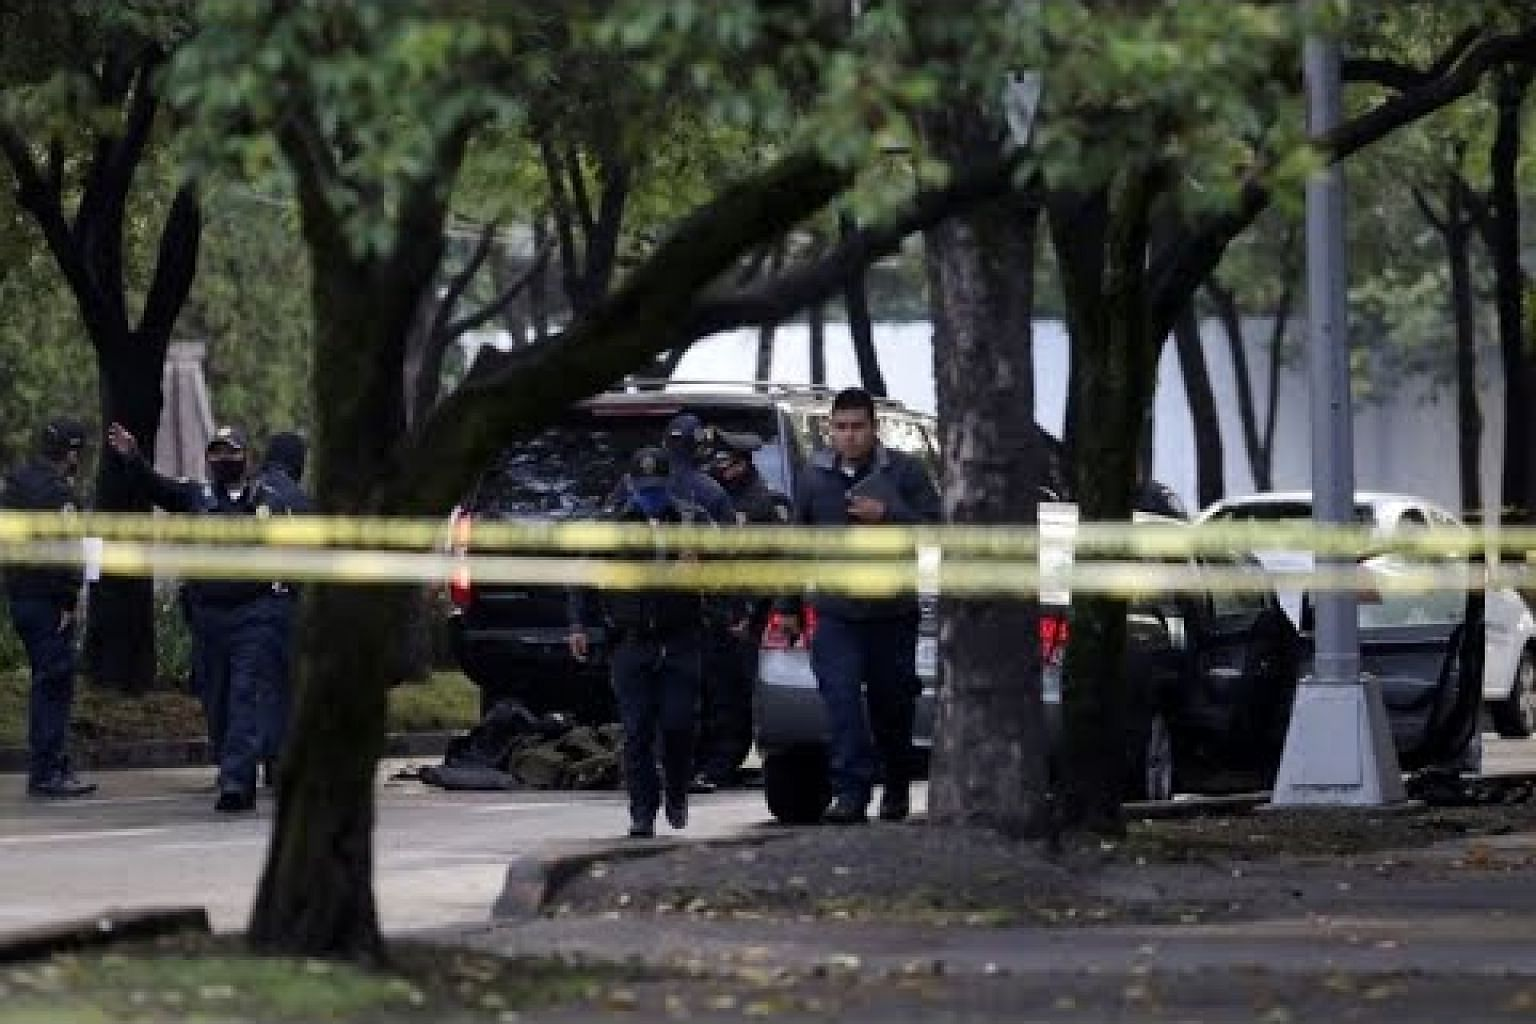 Mexico City police chief shot in assassination attempt